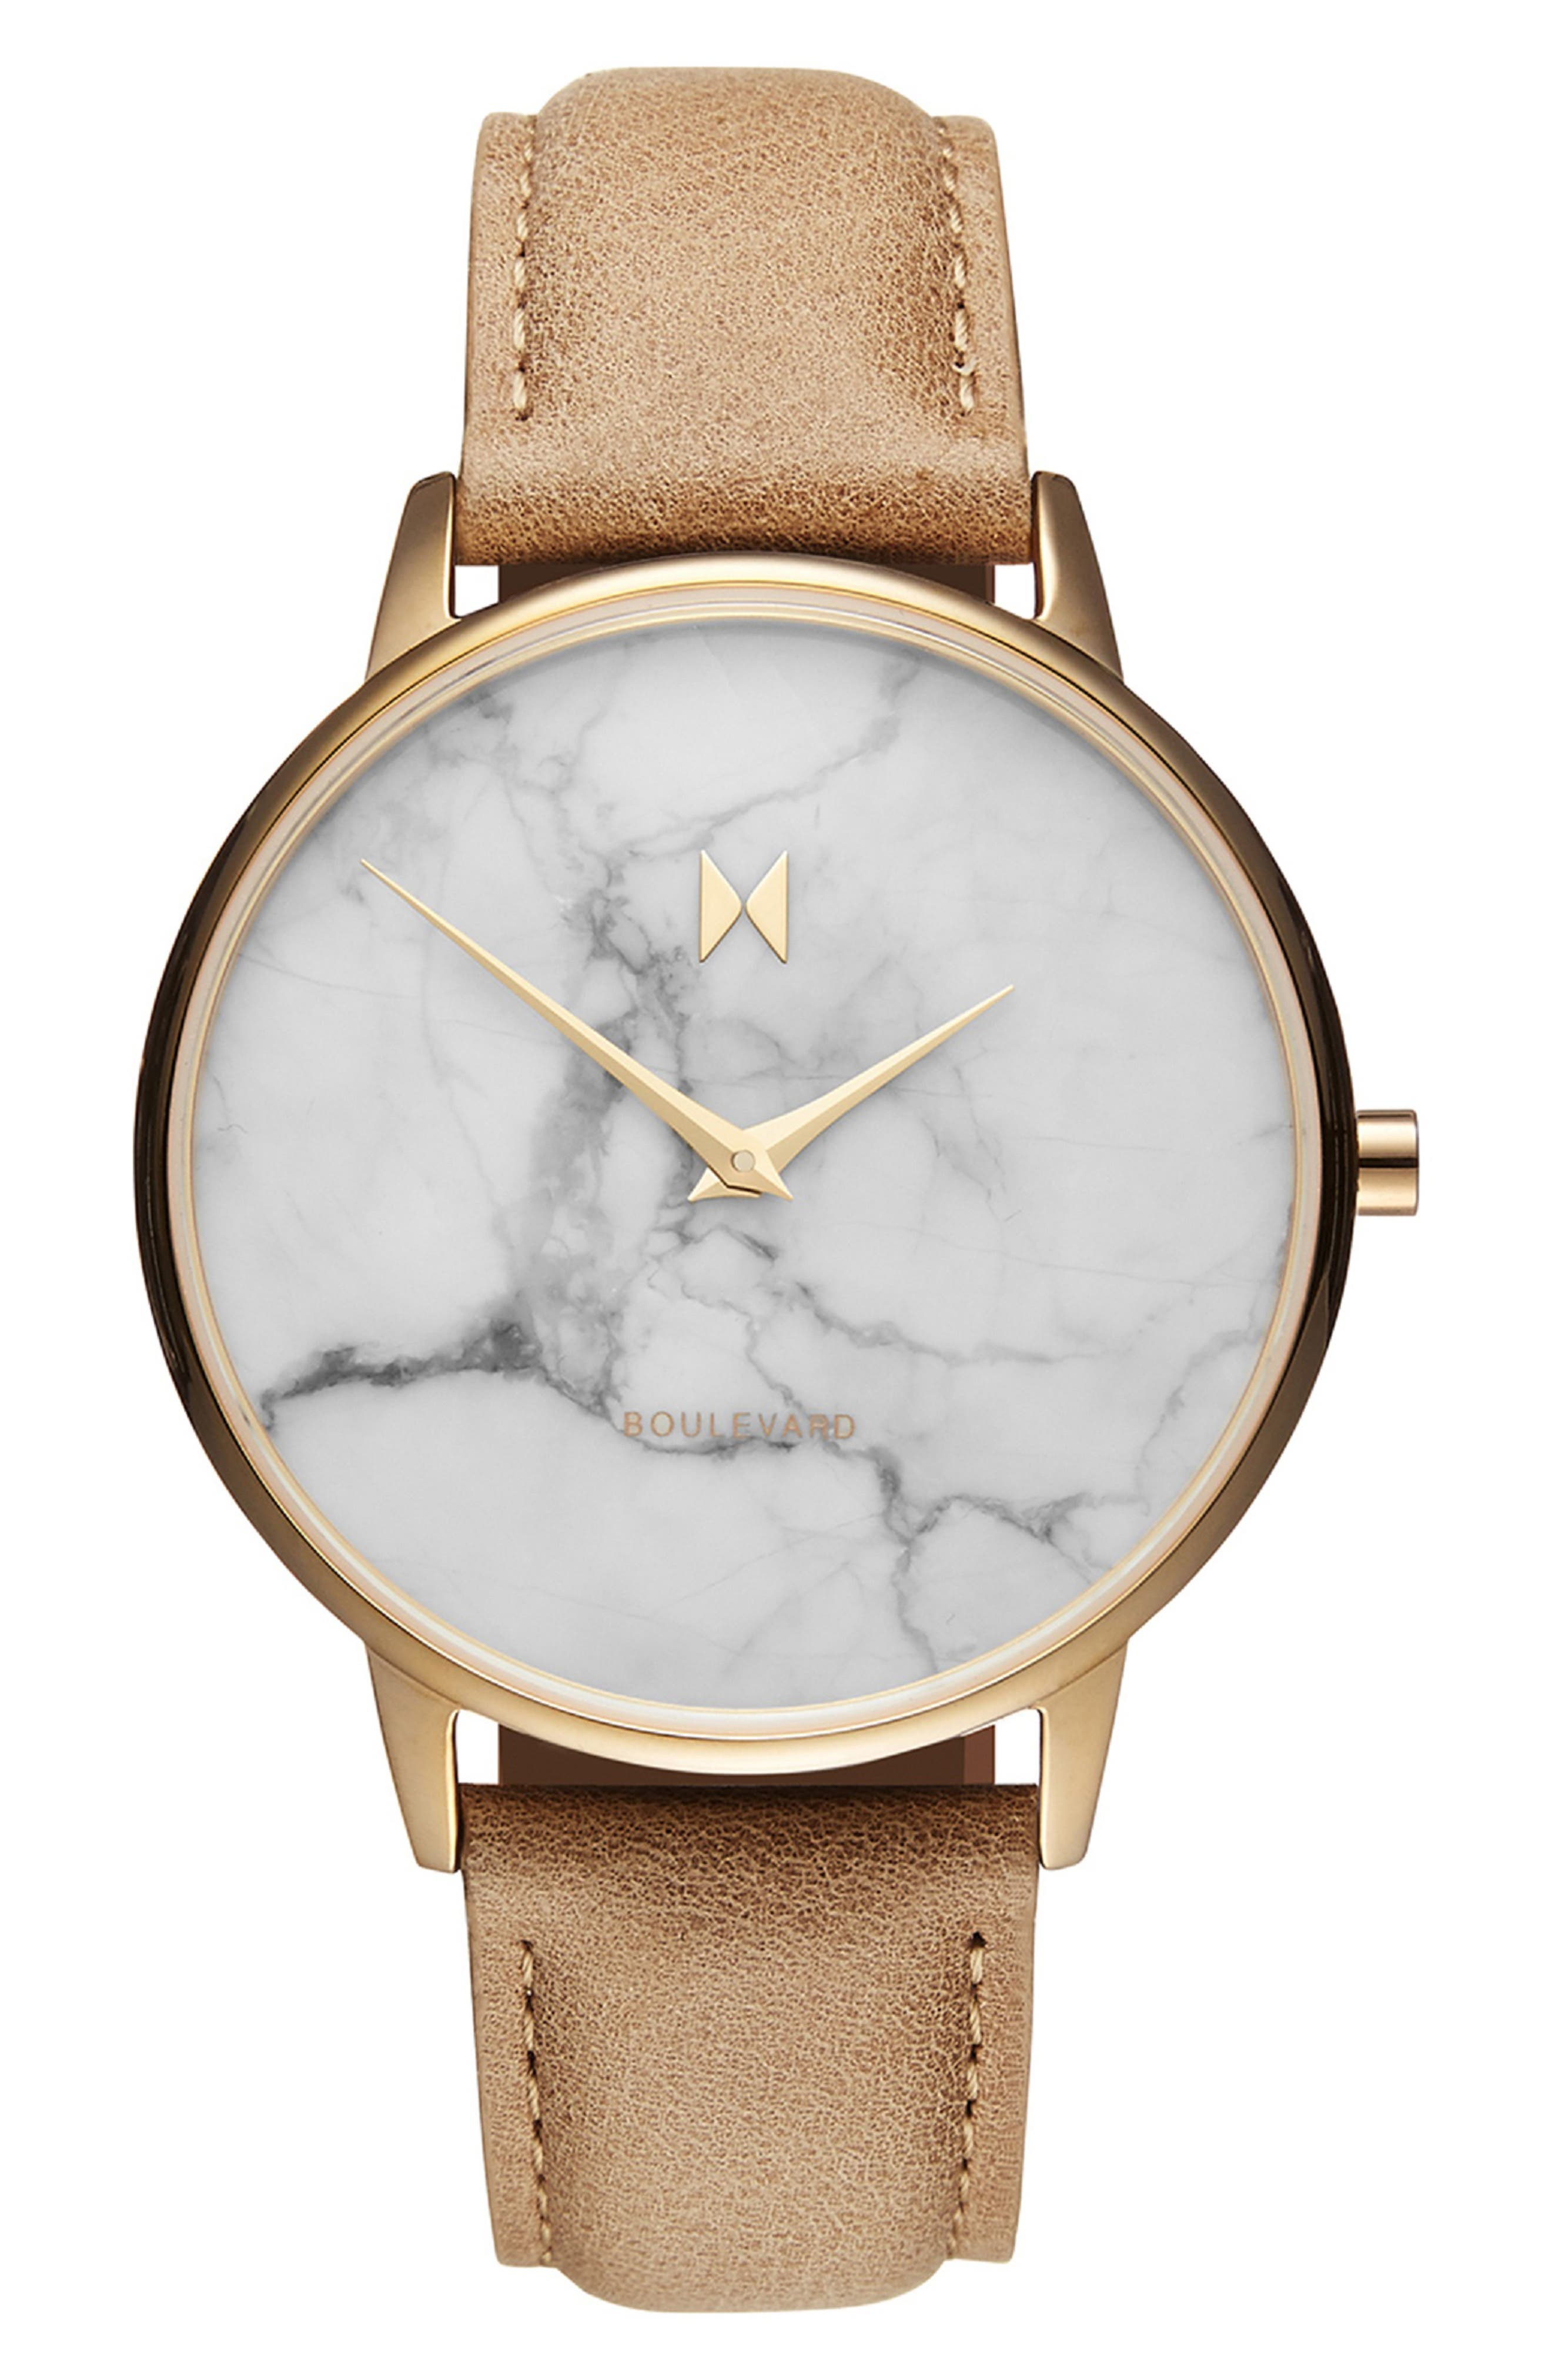 MVMT, Boulevard Leather Strap Watch, 38mm, Main thumbnail 1, color, CARAMEL/ WHITE MARBLE/ GOLD